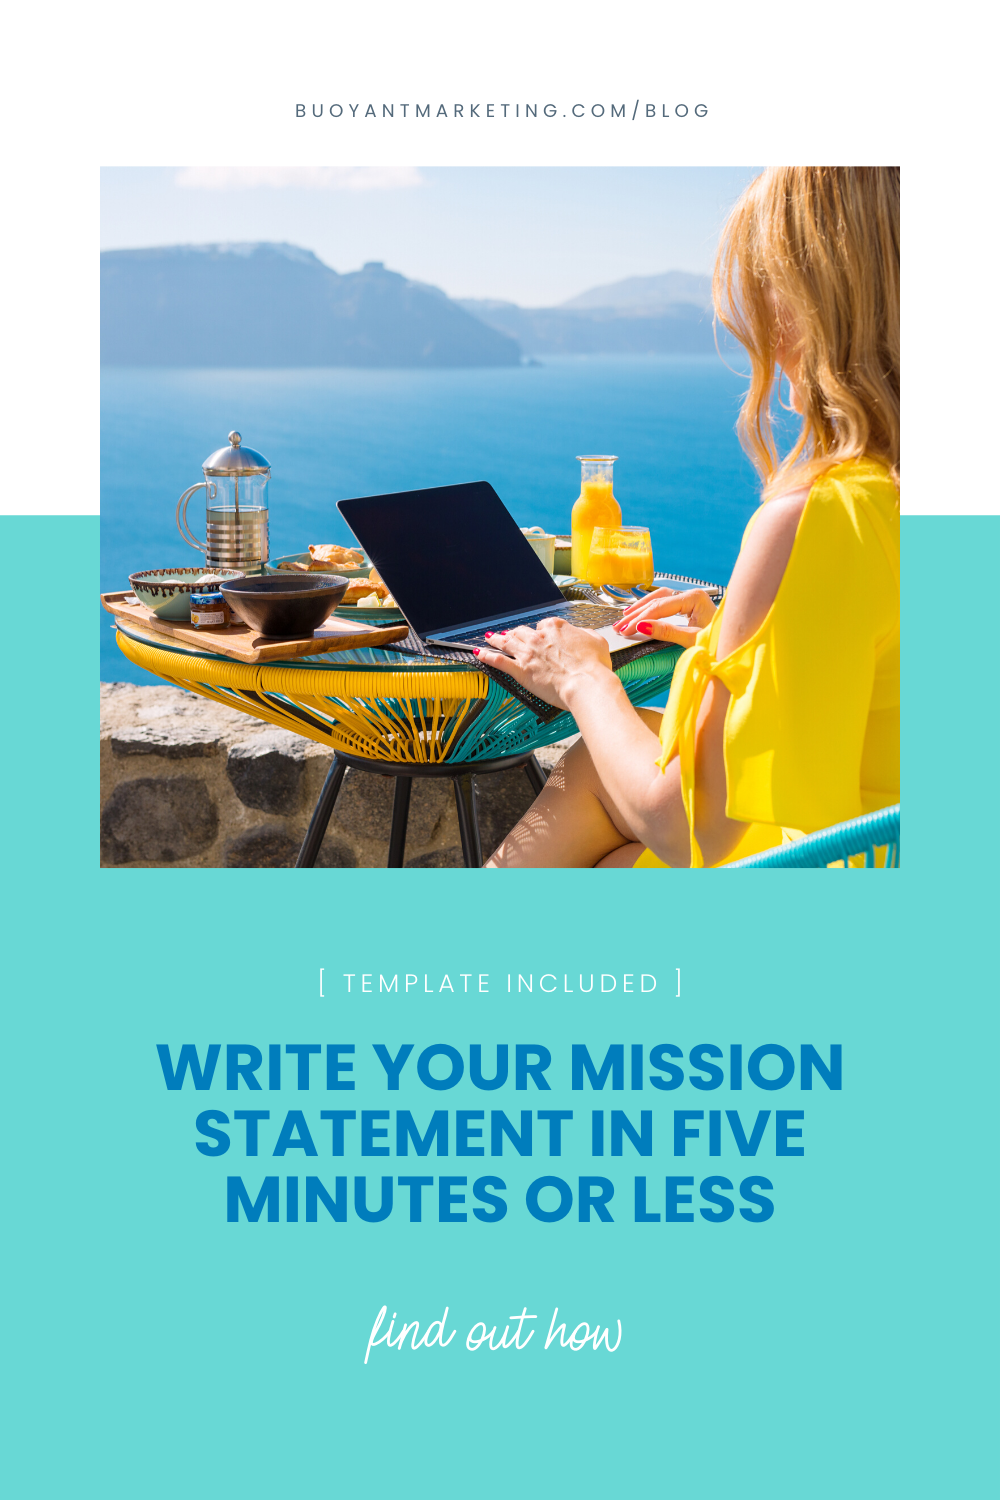 Mission Statement Generator Template Included Blog Buoyant Serving Innovative B2c Brands In 2020 Copywriting Ads Mission Statement Photography Branding